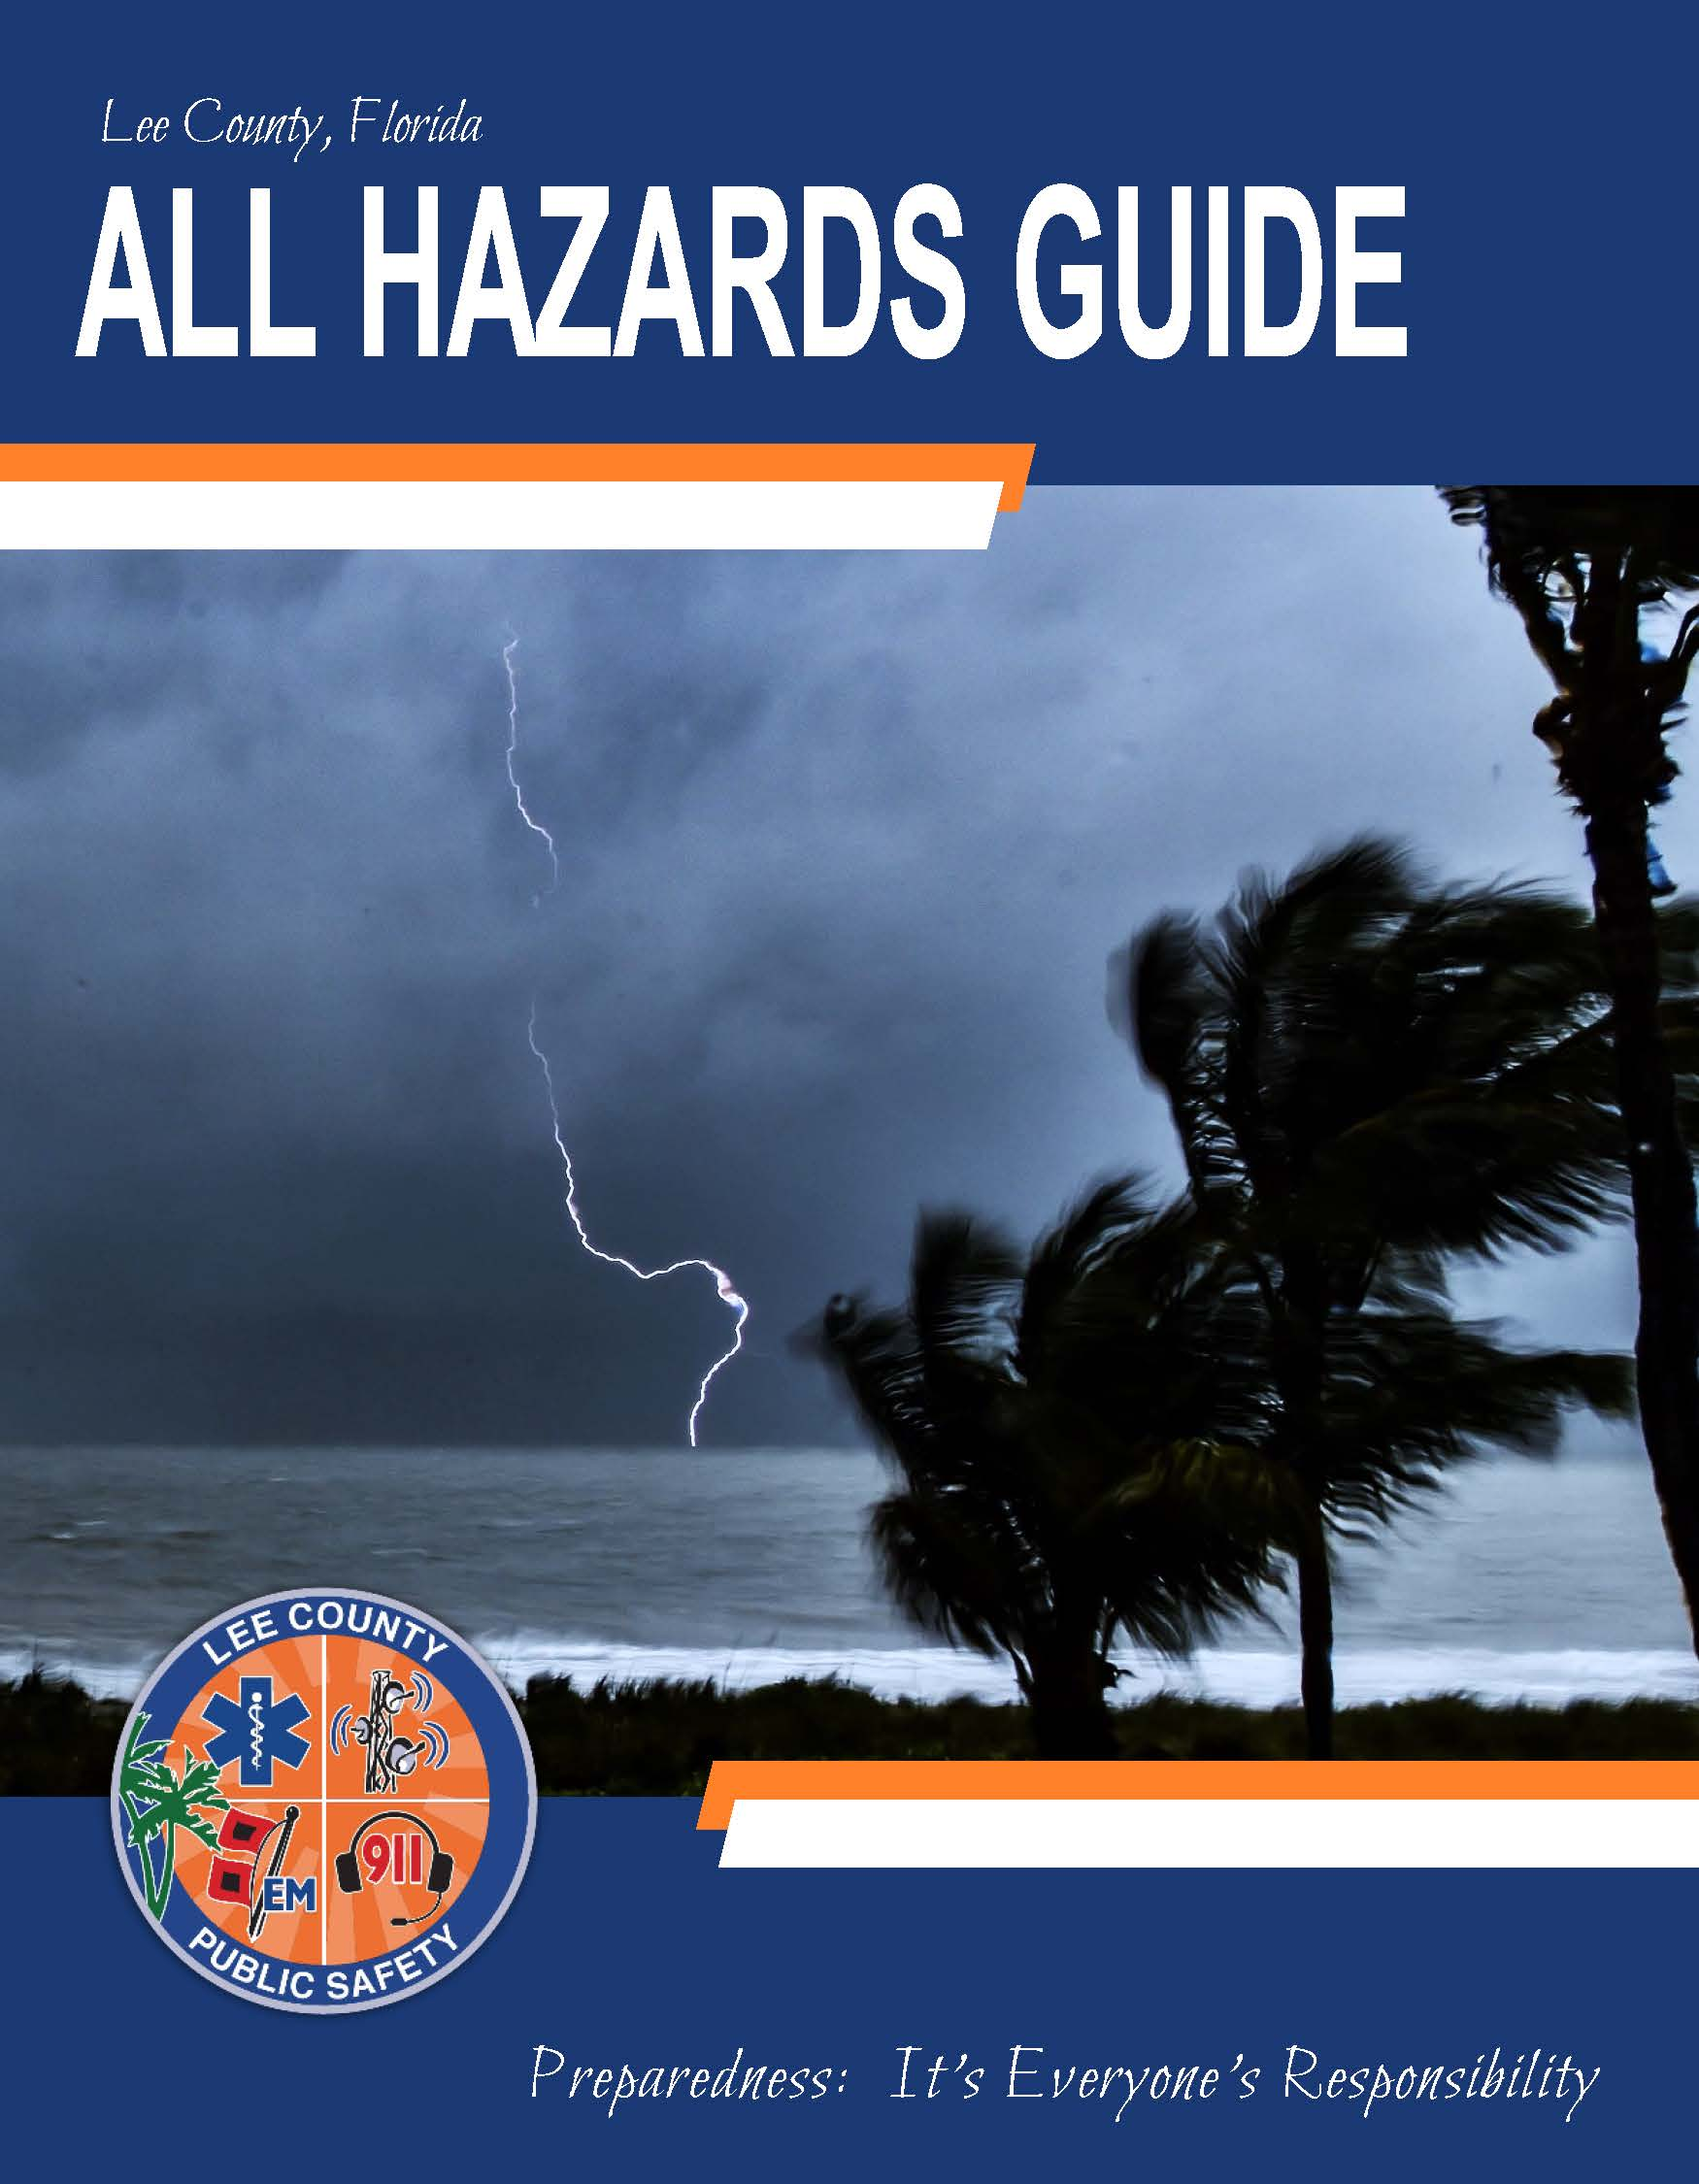 Lee County All Hazards Guide 2019_Page_01